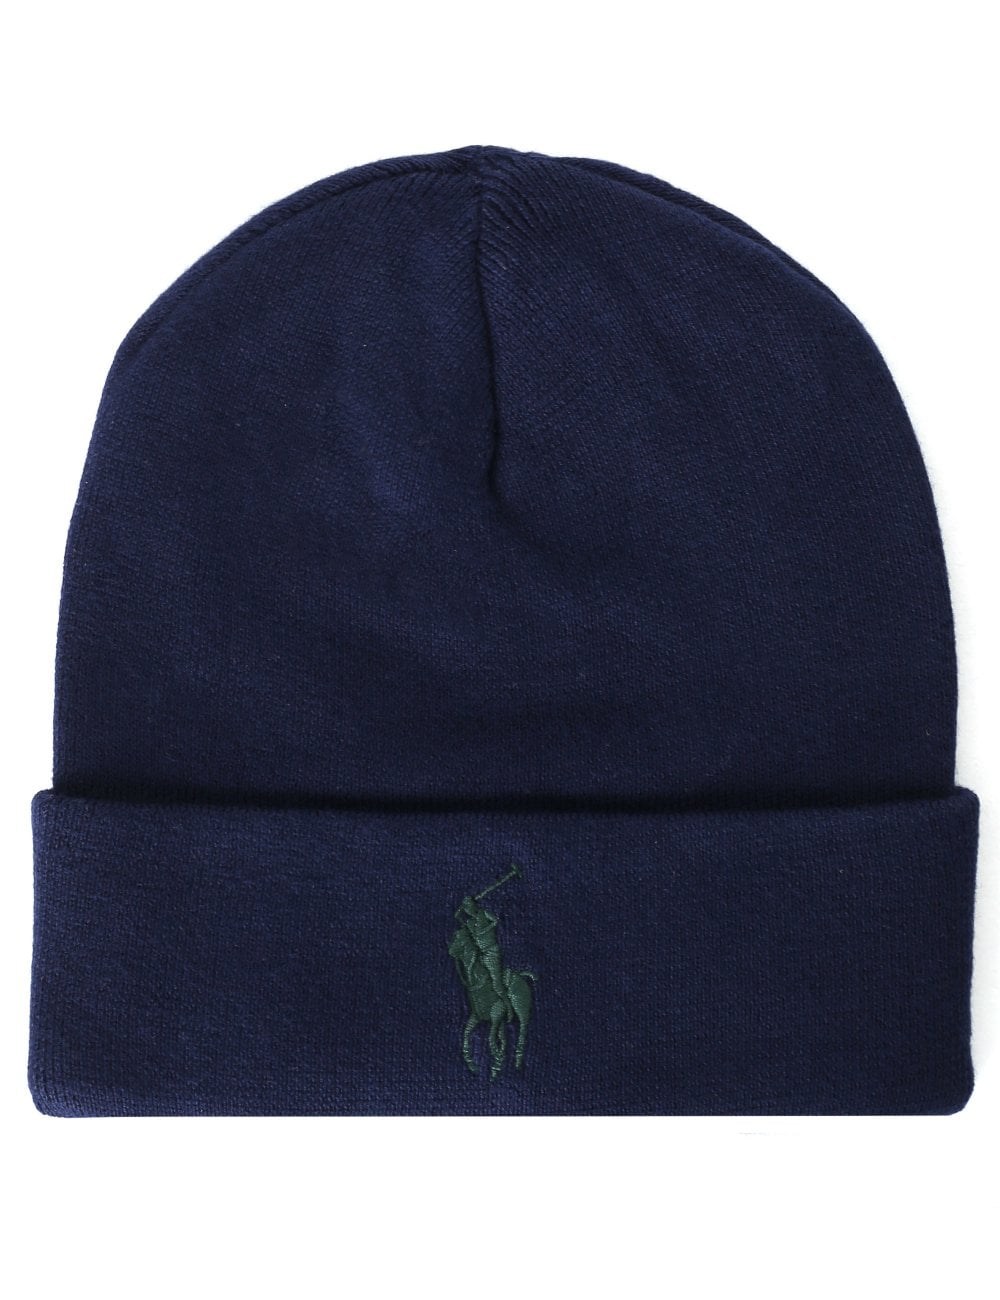 Polo Ralph Lauren Men s Fold Over Beanie Hat 1ce7b8e4e24